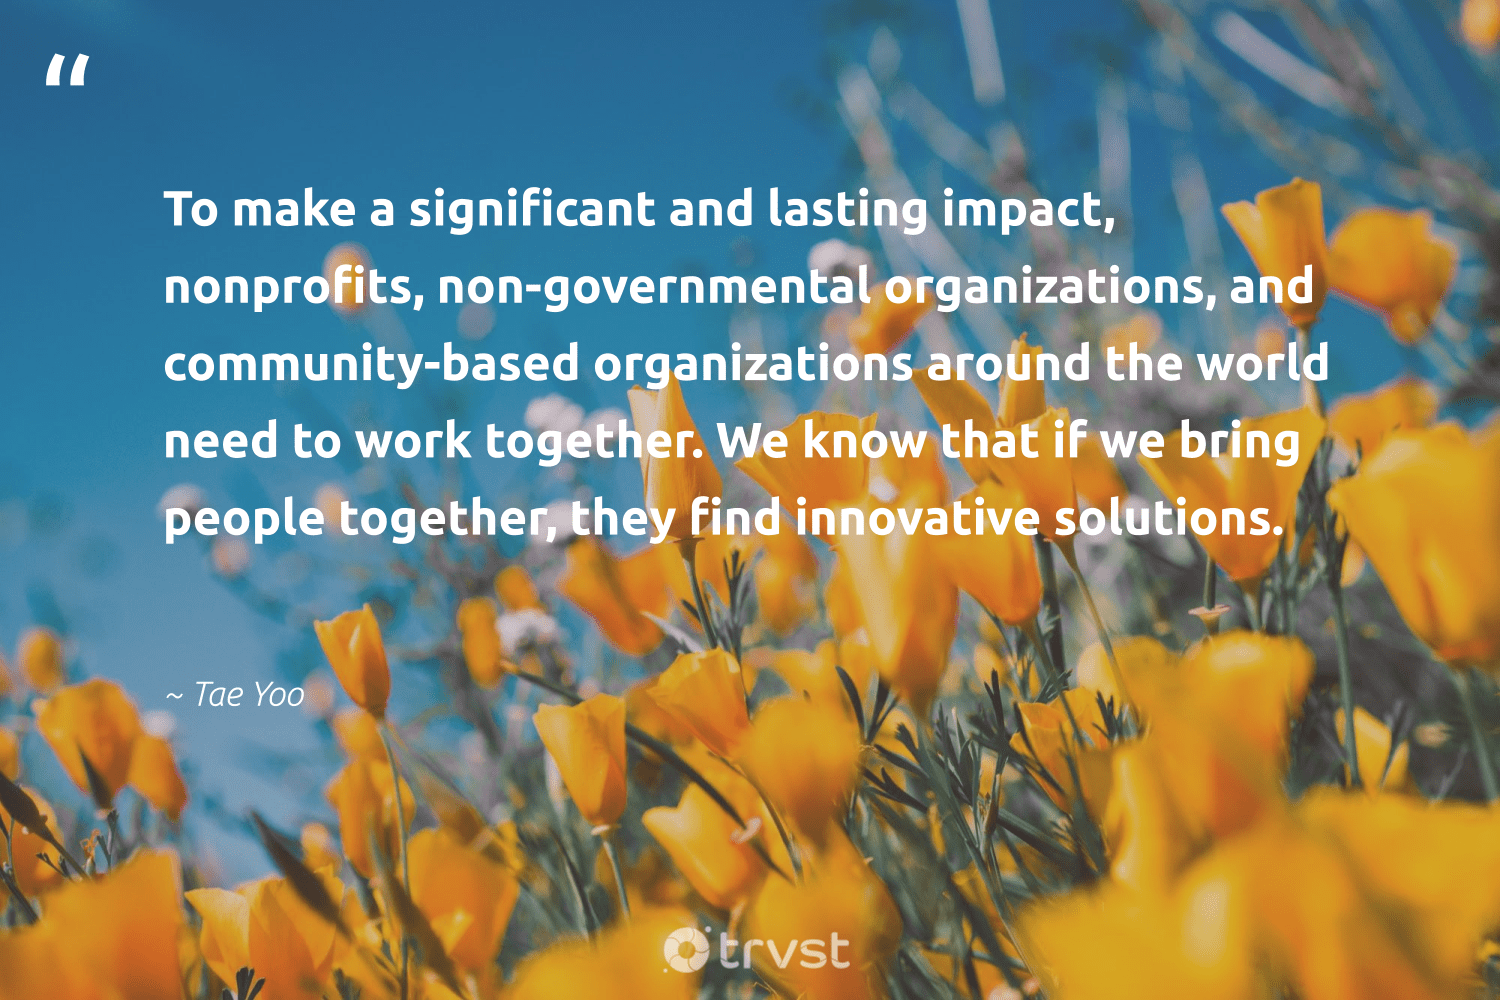 """To make a significant and lasting impact, nonprofits, non-governmental organizations, and community-based organizations around the world need to work together. We know that if we bring people together, they find innovative solutions.""  - Tae Yoo #trvst #quotes #impact #betterplanet #bethechange #socialchange #thinkgreen #makeadifference #ecoconscious #weareallone #beinspired #giveback"